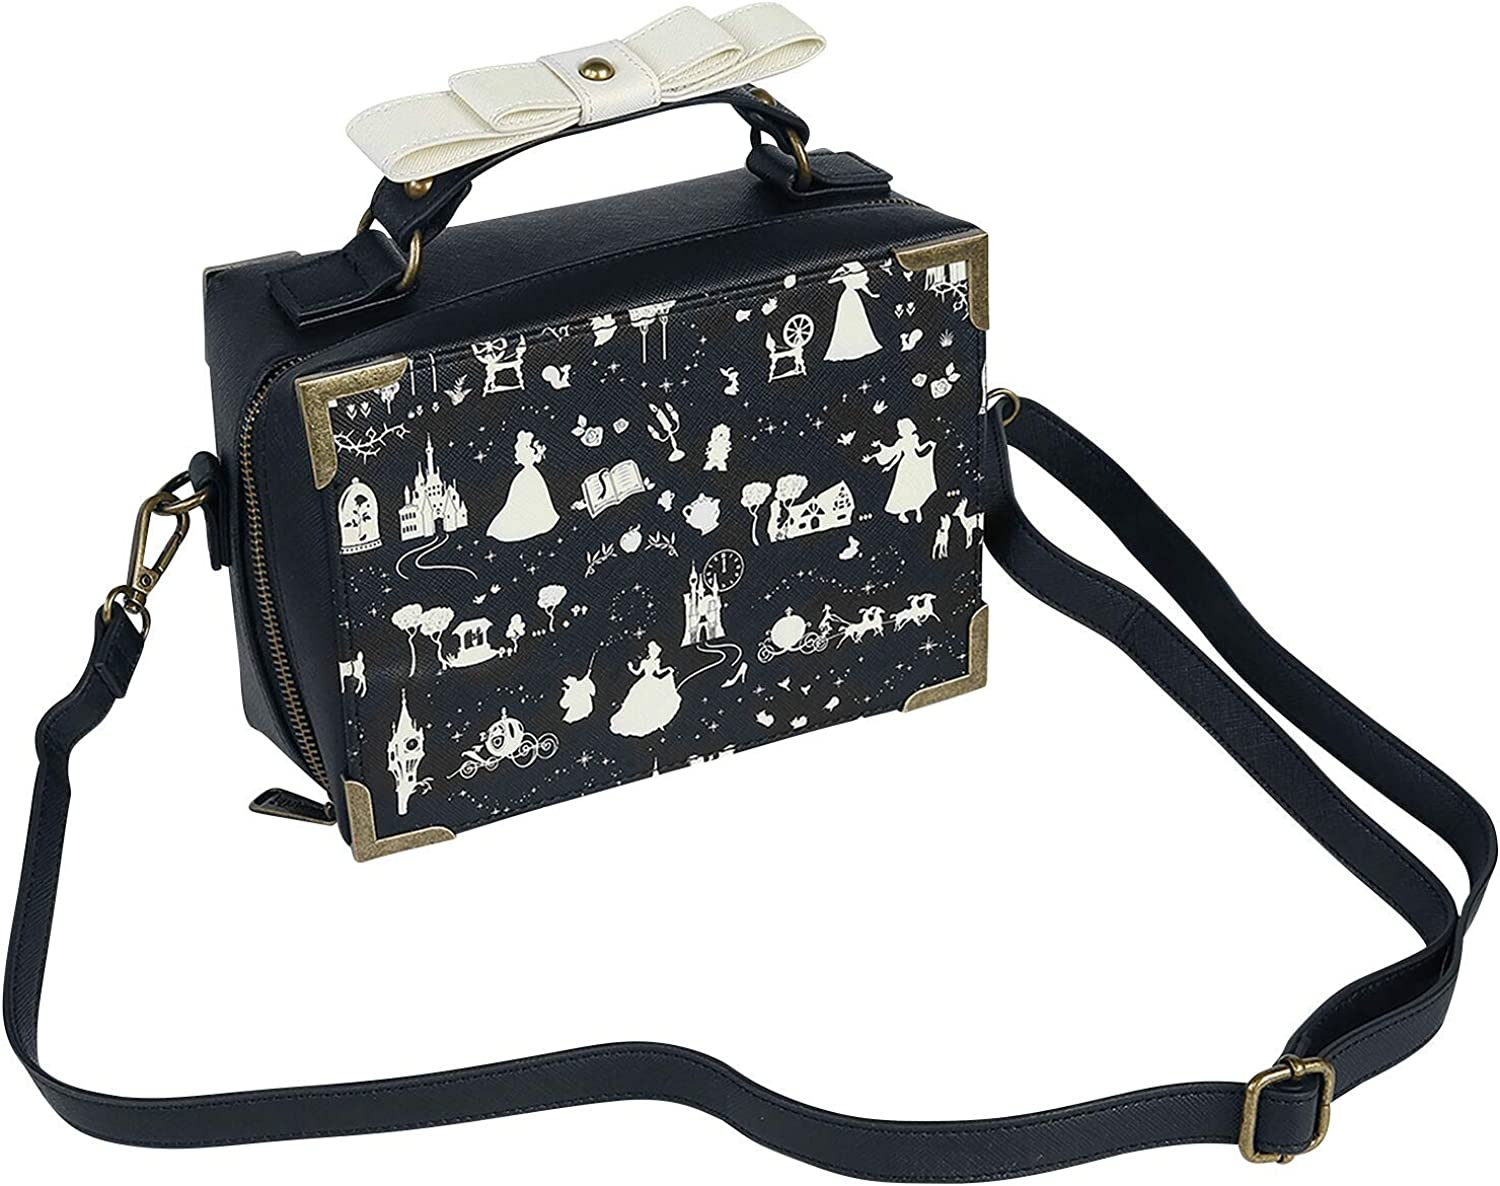 Loungefly x Disney Princess Vintage-Inspired Box Crossbody Bag